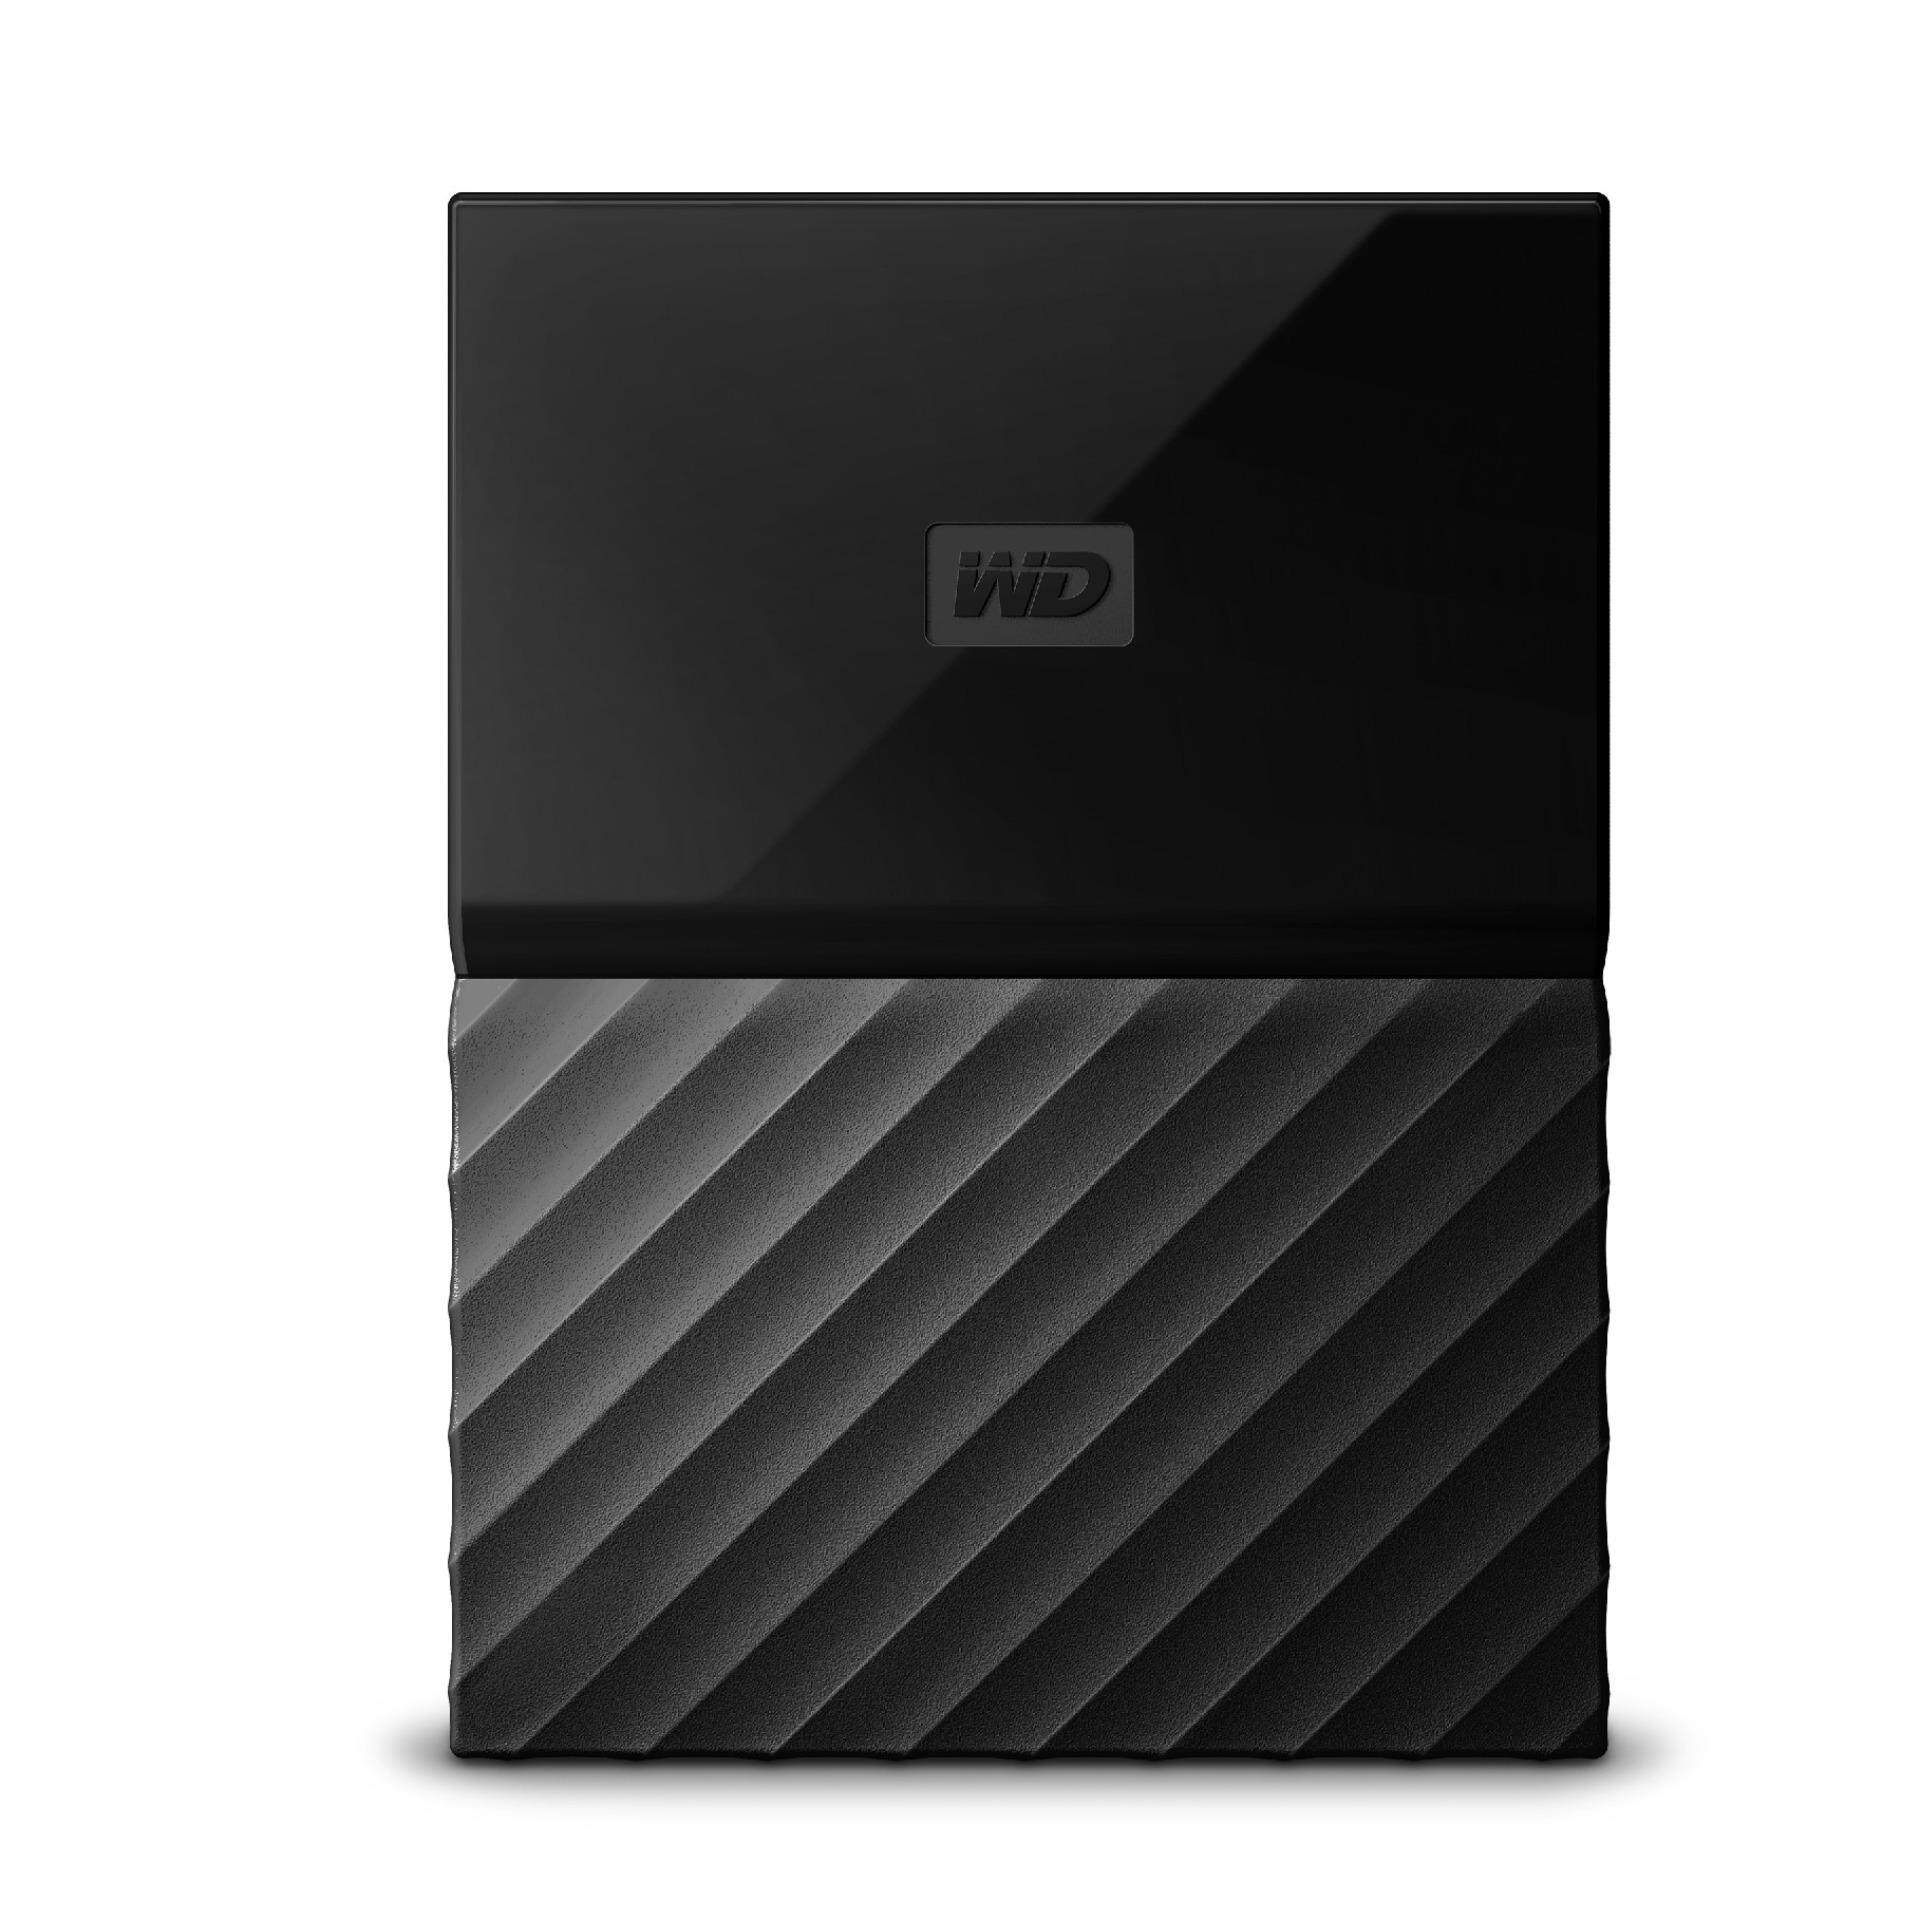 Wd My Passport Vibrant 2tb (7mm) By Lazada Retail Wd.